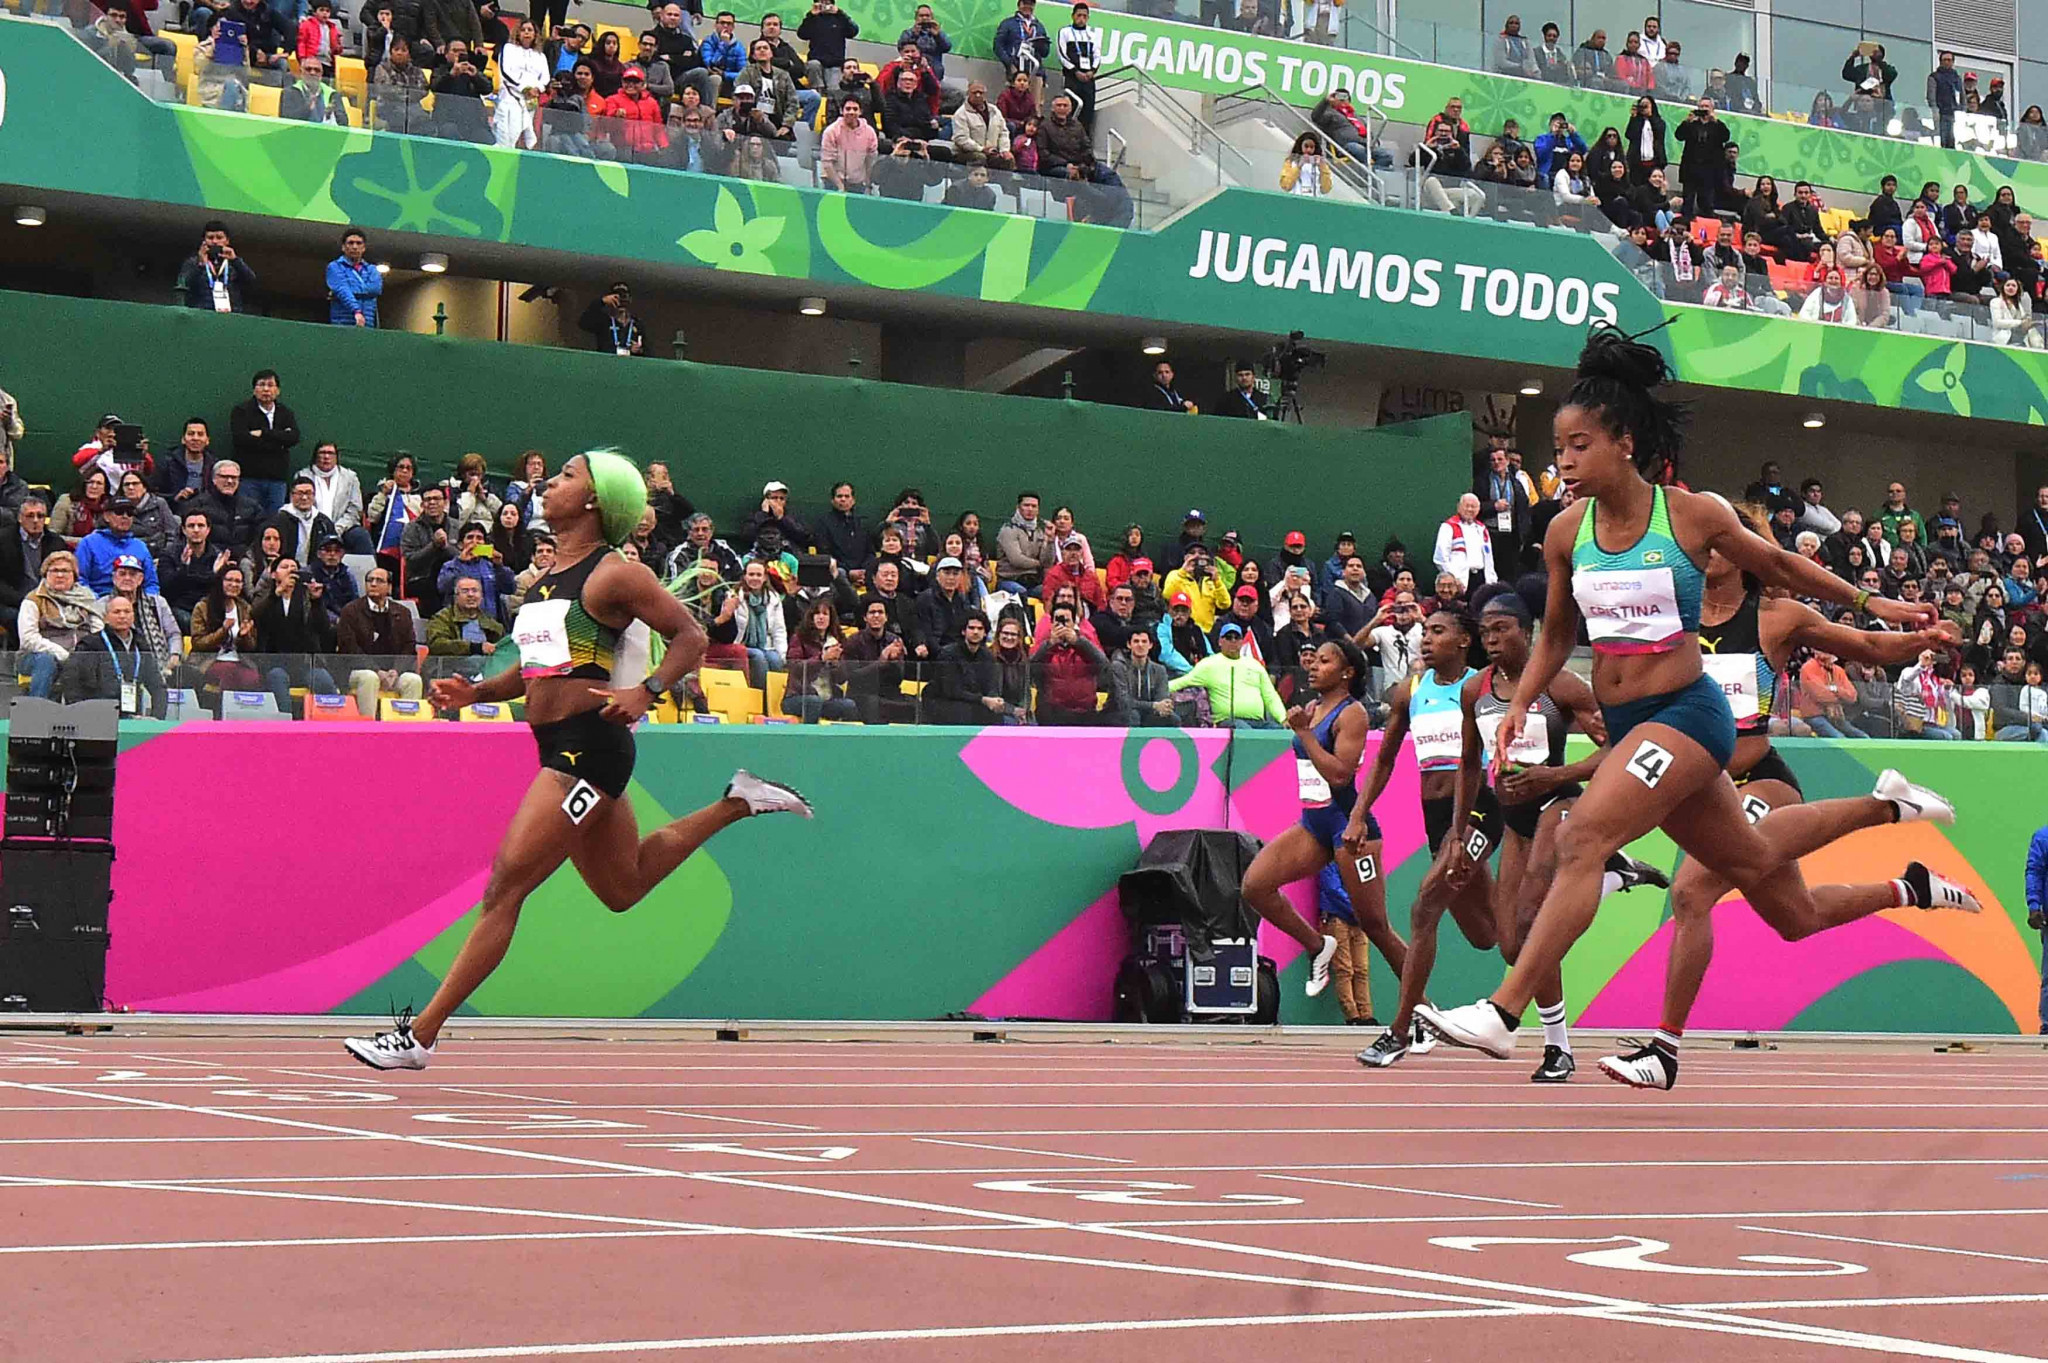 Jamaica's Shelly-Ann Fraser-Pryce, left, has been nominated for two prizes in the Panam Sports Awards after winning the 100 and 200m at the World Championships 